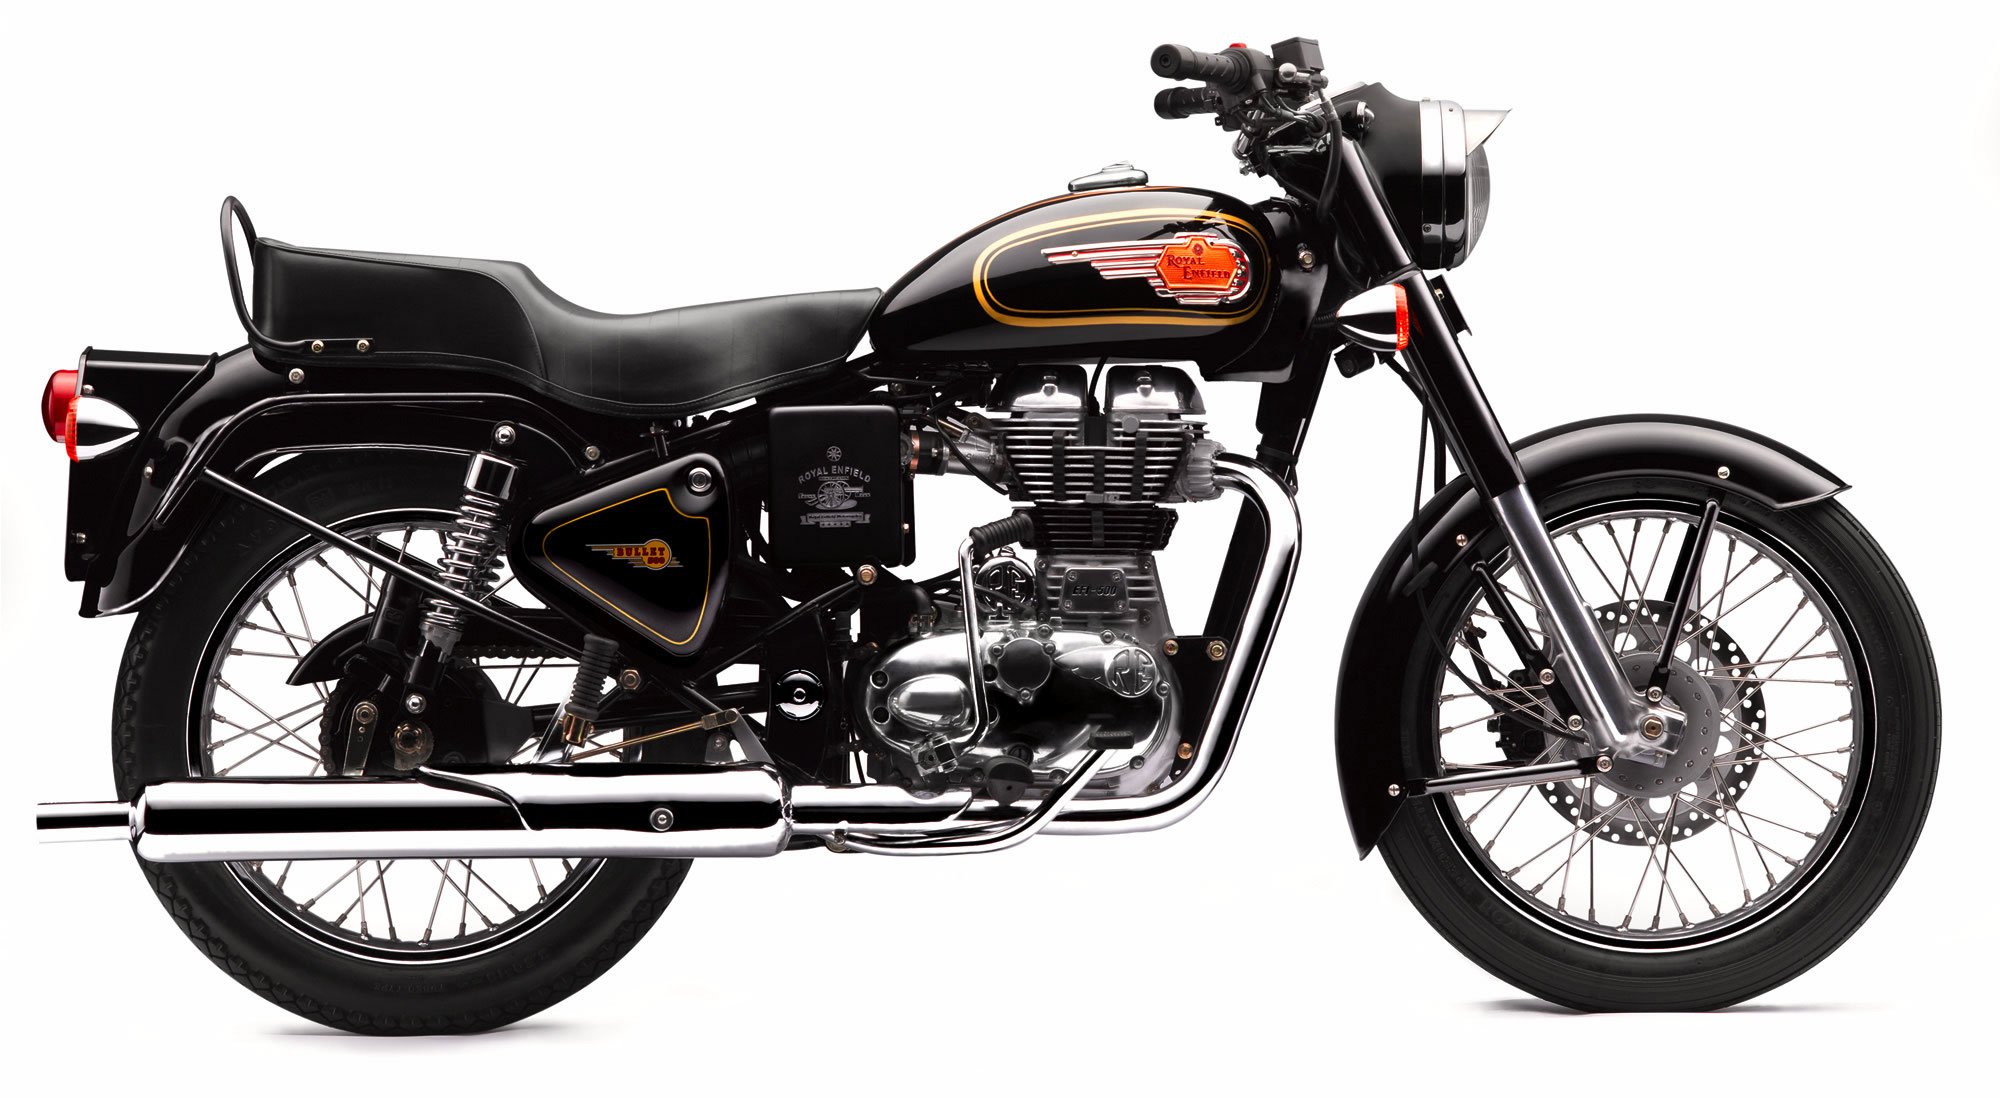 Royal Enfield Bullet 500 Army 2001 images #126032